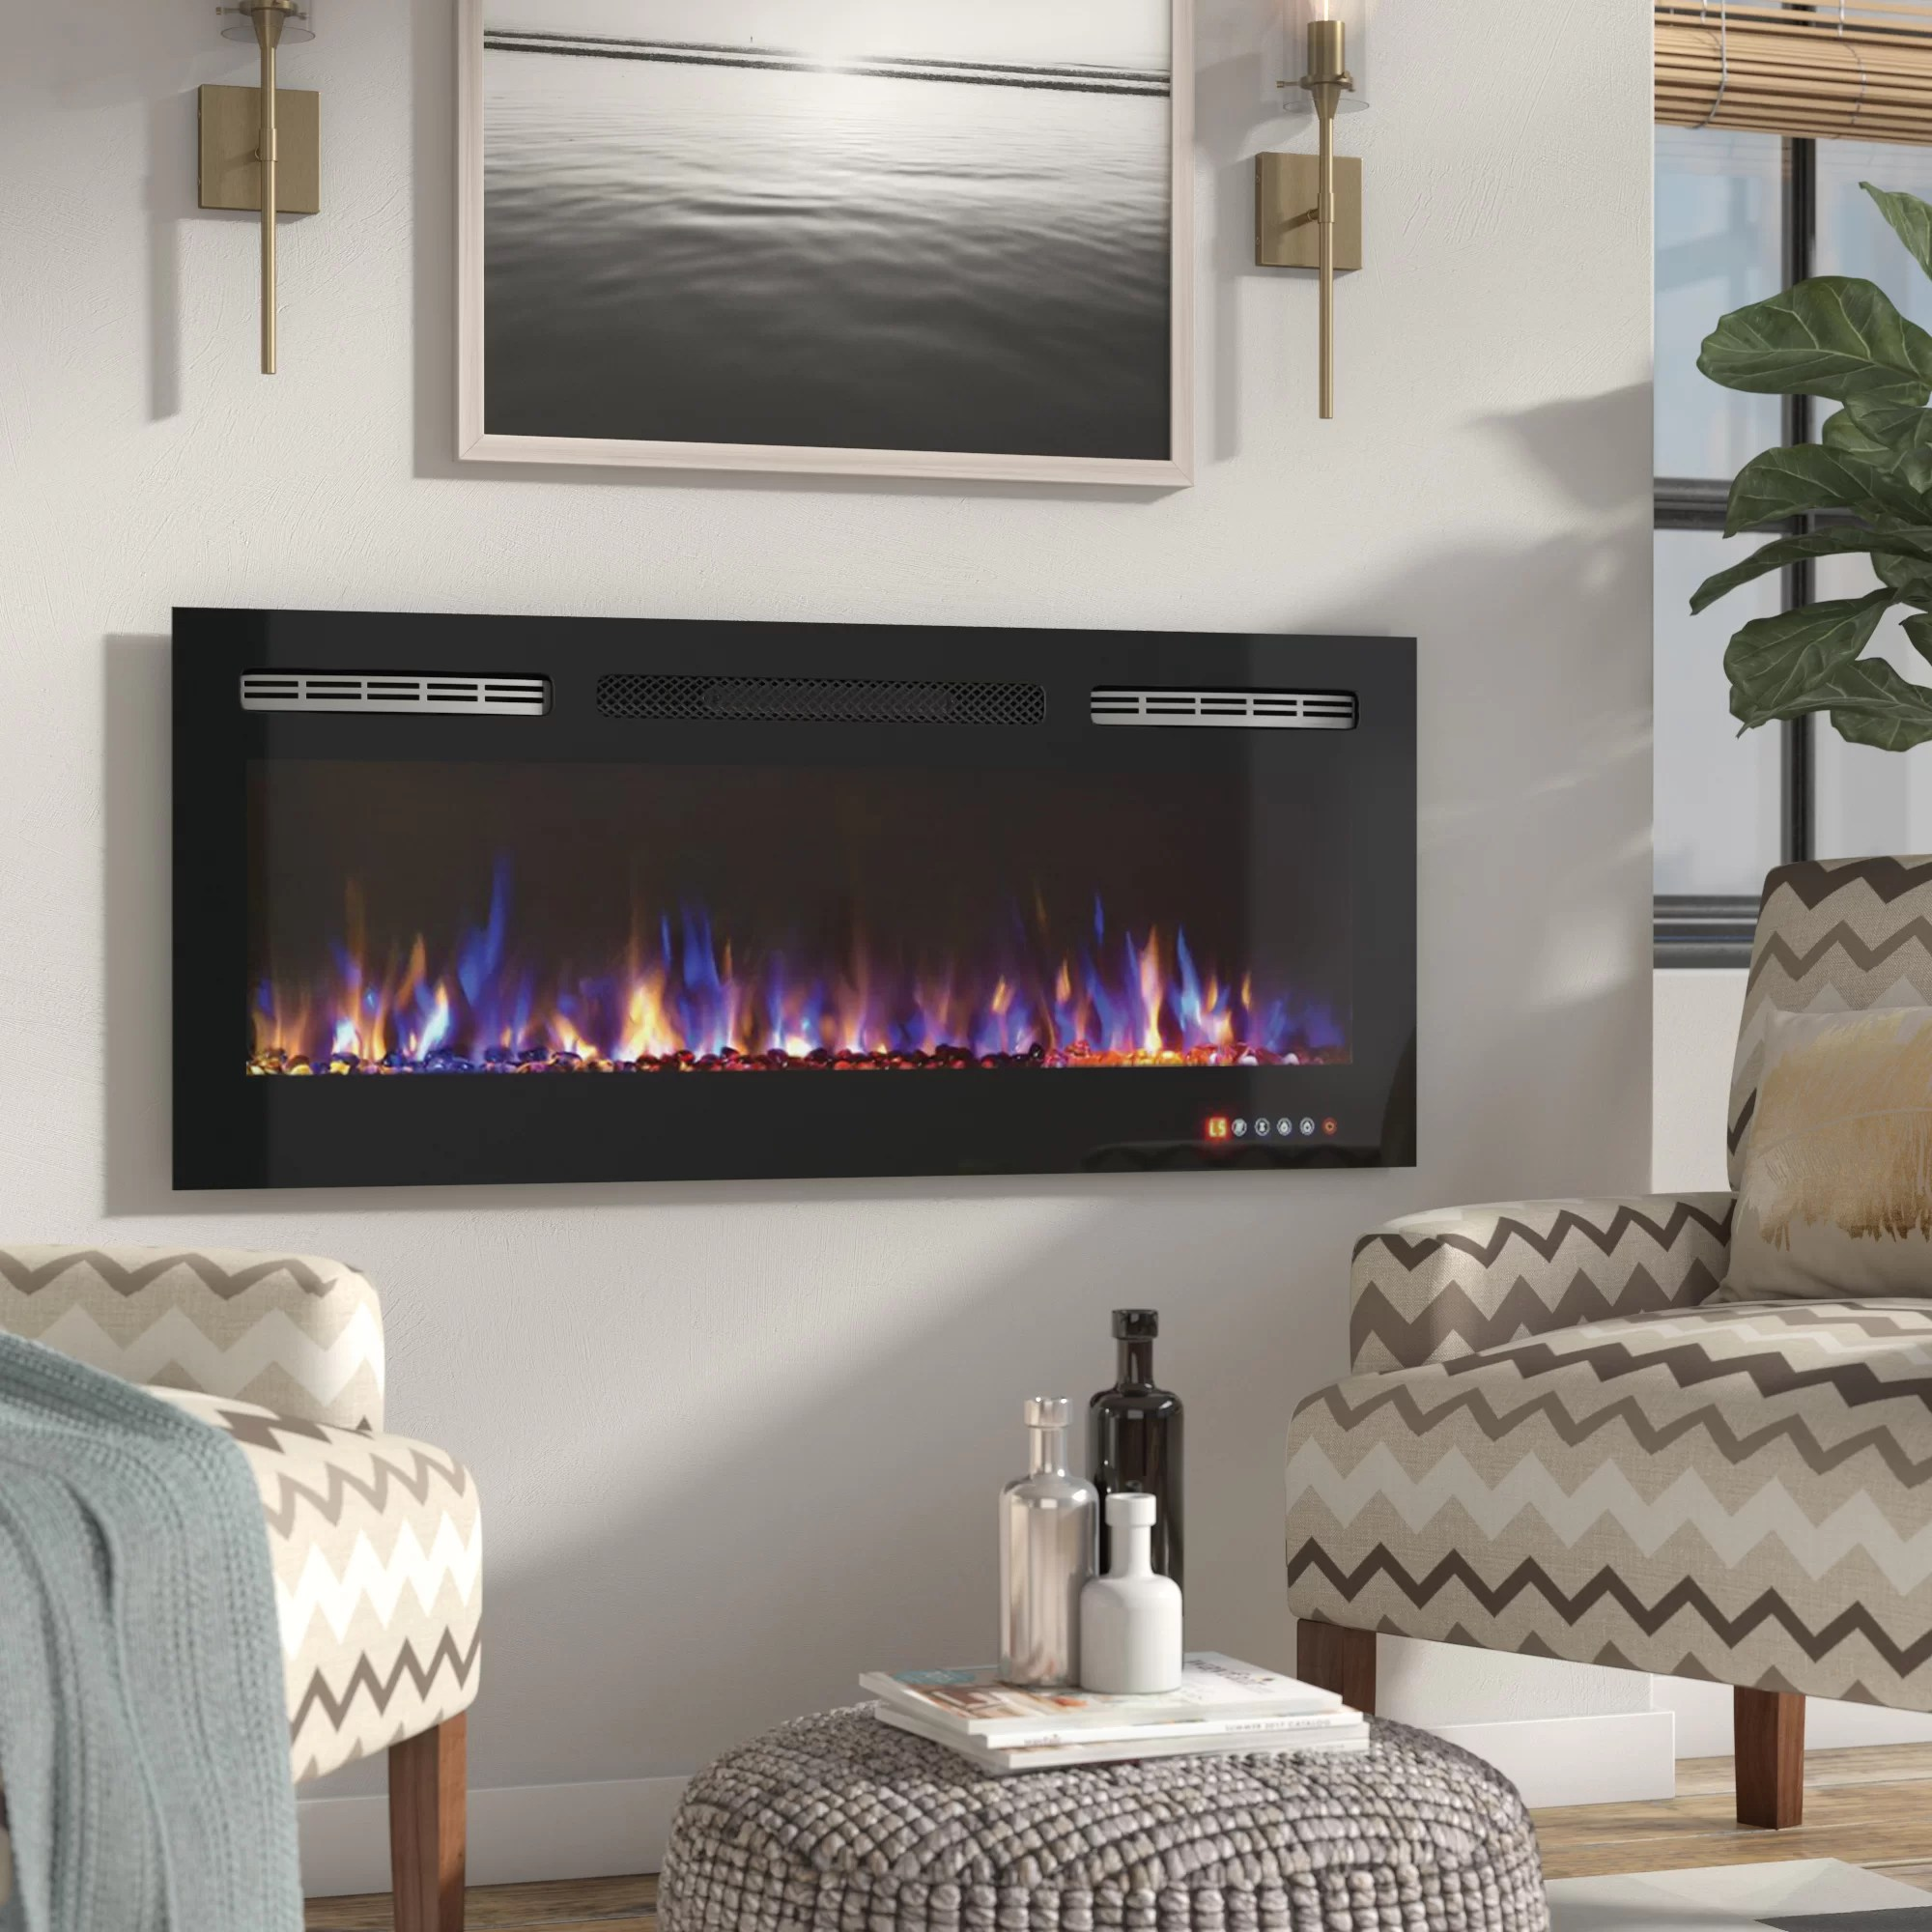 Living Room Electric Fireplace Demotte Wall Mounted Electric Fireplace